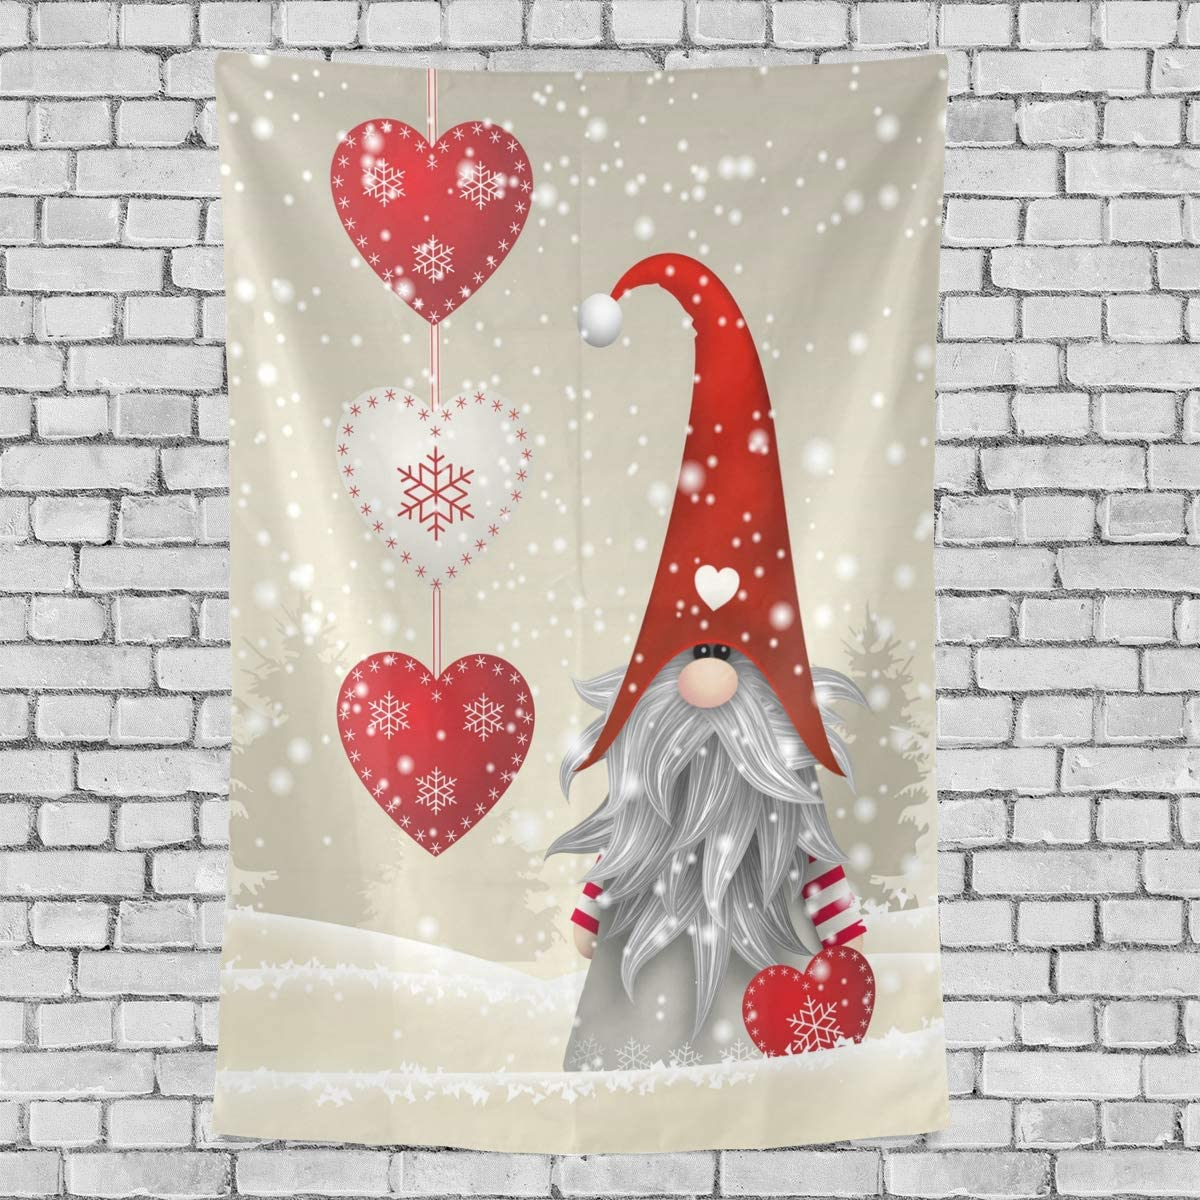 One Bear Christmas Tapestry Winter Traditional Gnome Santa Claus Art Vertical Tapestry Wall Hanging Snowflake Heart Headboard Tapestries Home Decor for Bedroom College 60 X 90 Inch